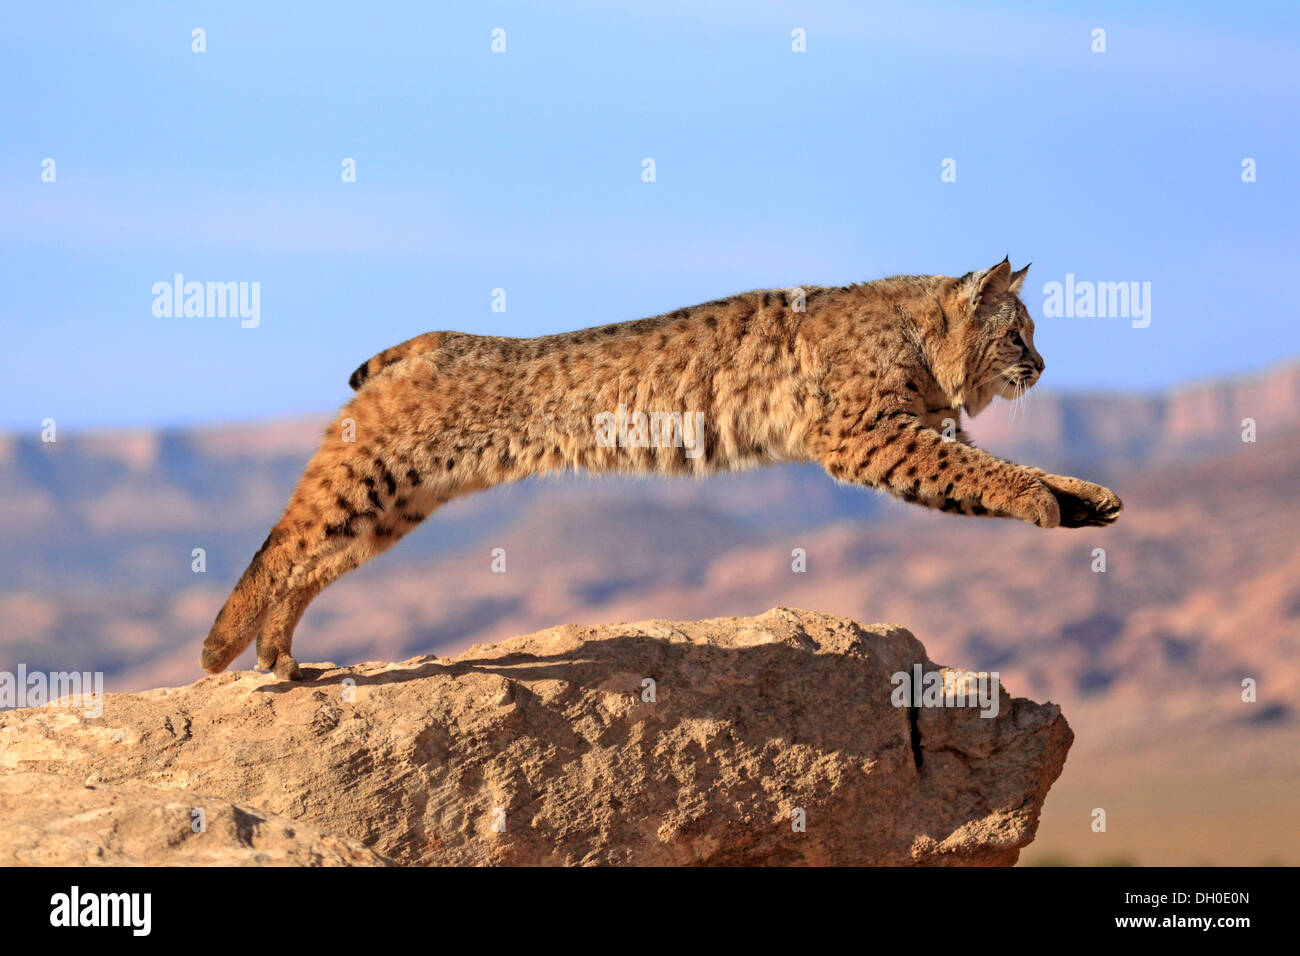 Bobcat (Lynx rufus) jumping from a rock, captive, Monument Valley, Utah, United States - Stock Image